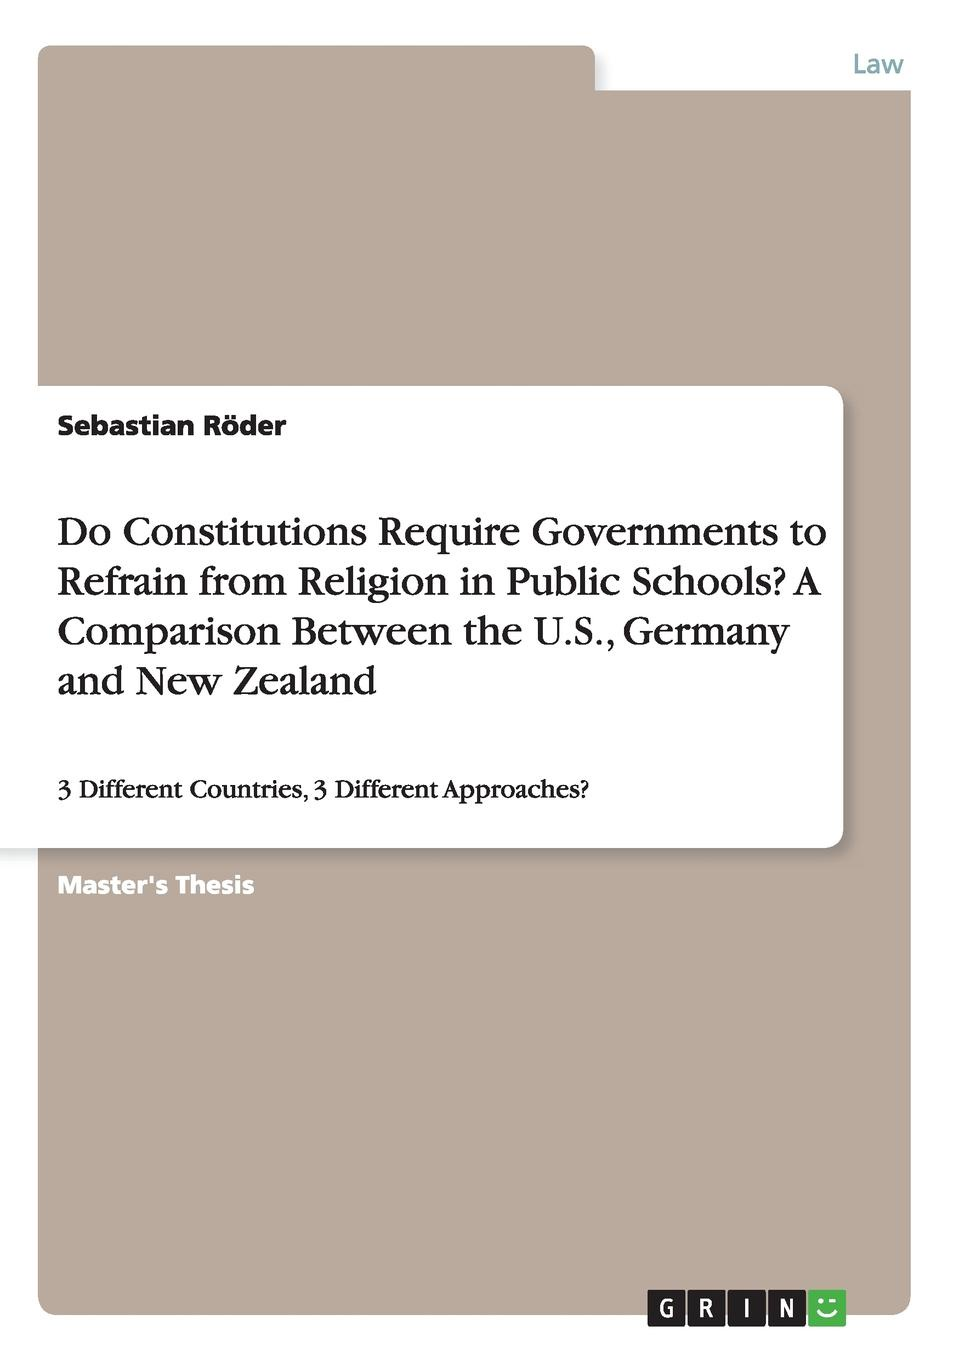 Sebastian Röder Do Constitutions Require Governments to Refrain from Religion in Public Schools. A Comparison Between the U.S., Germany and New Zealand цена и фото